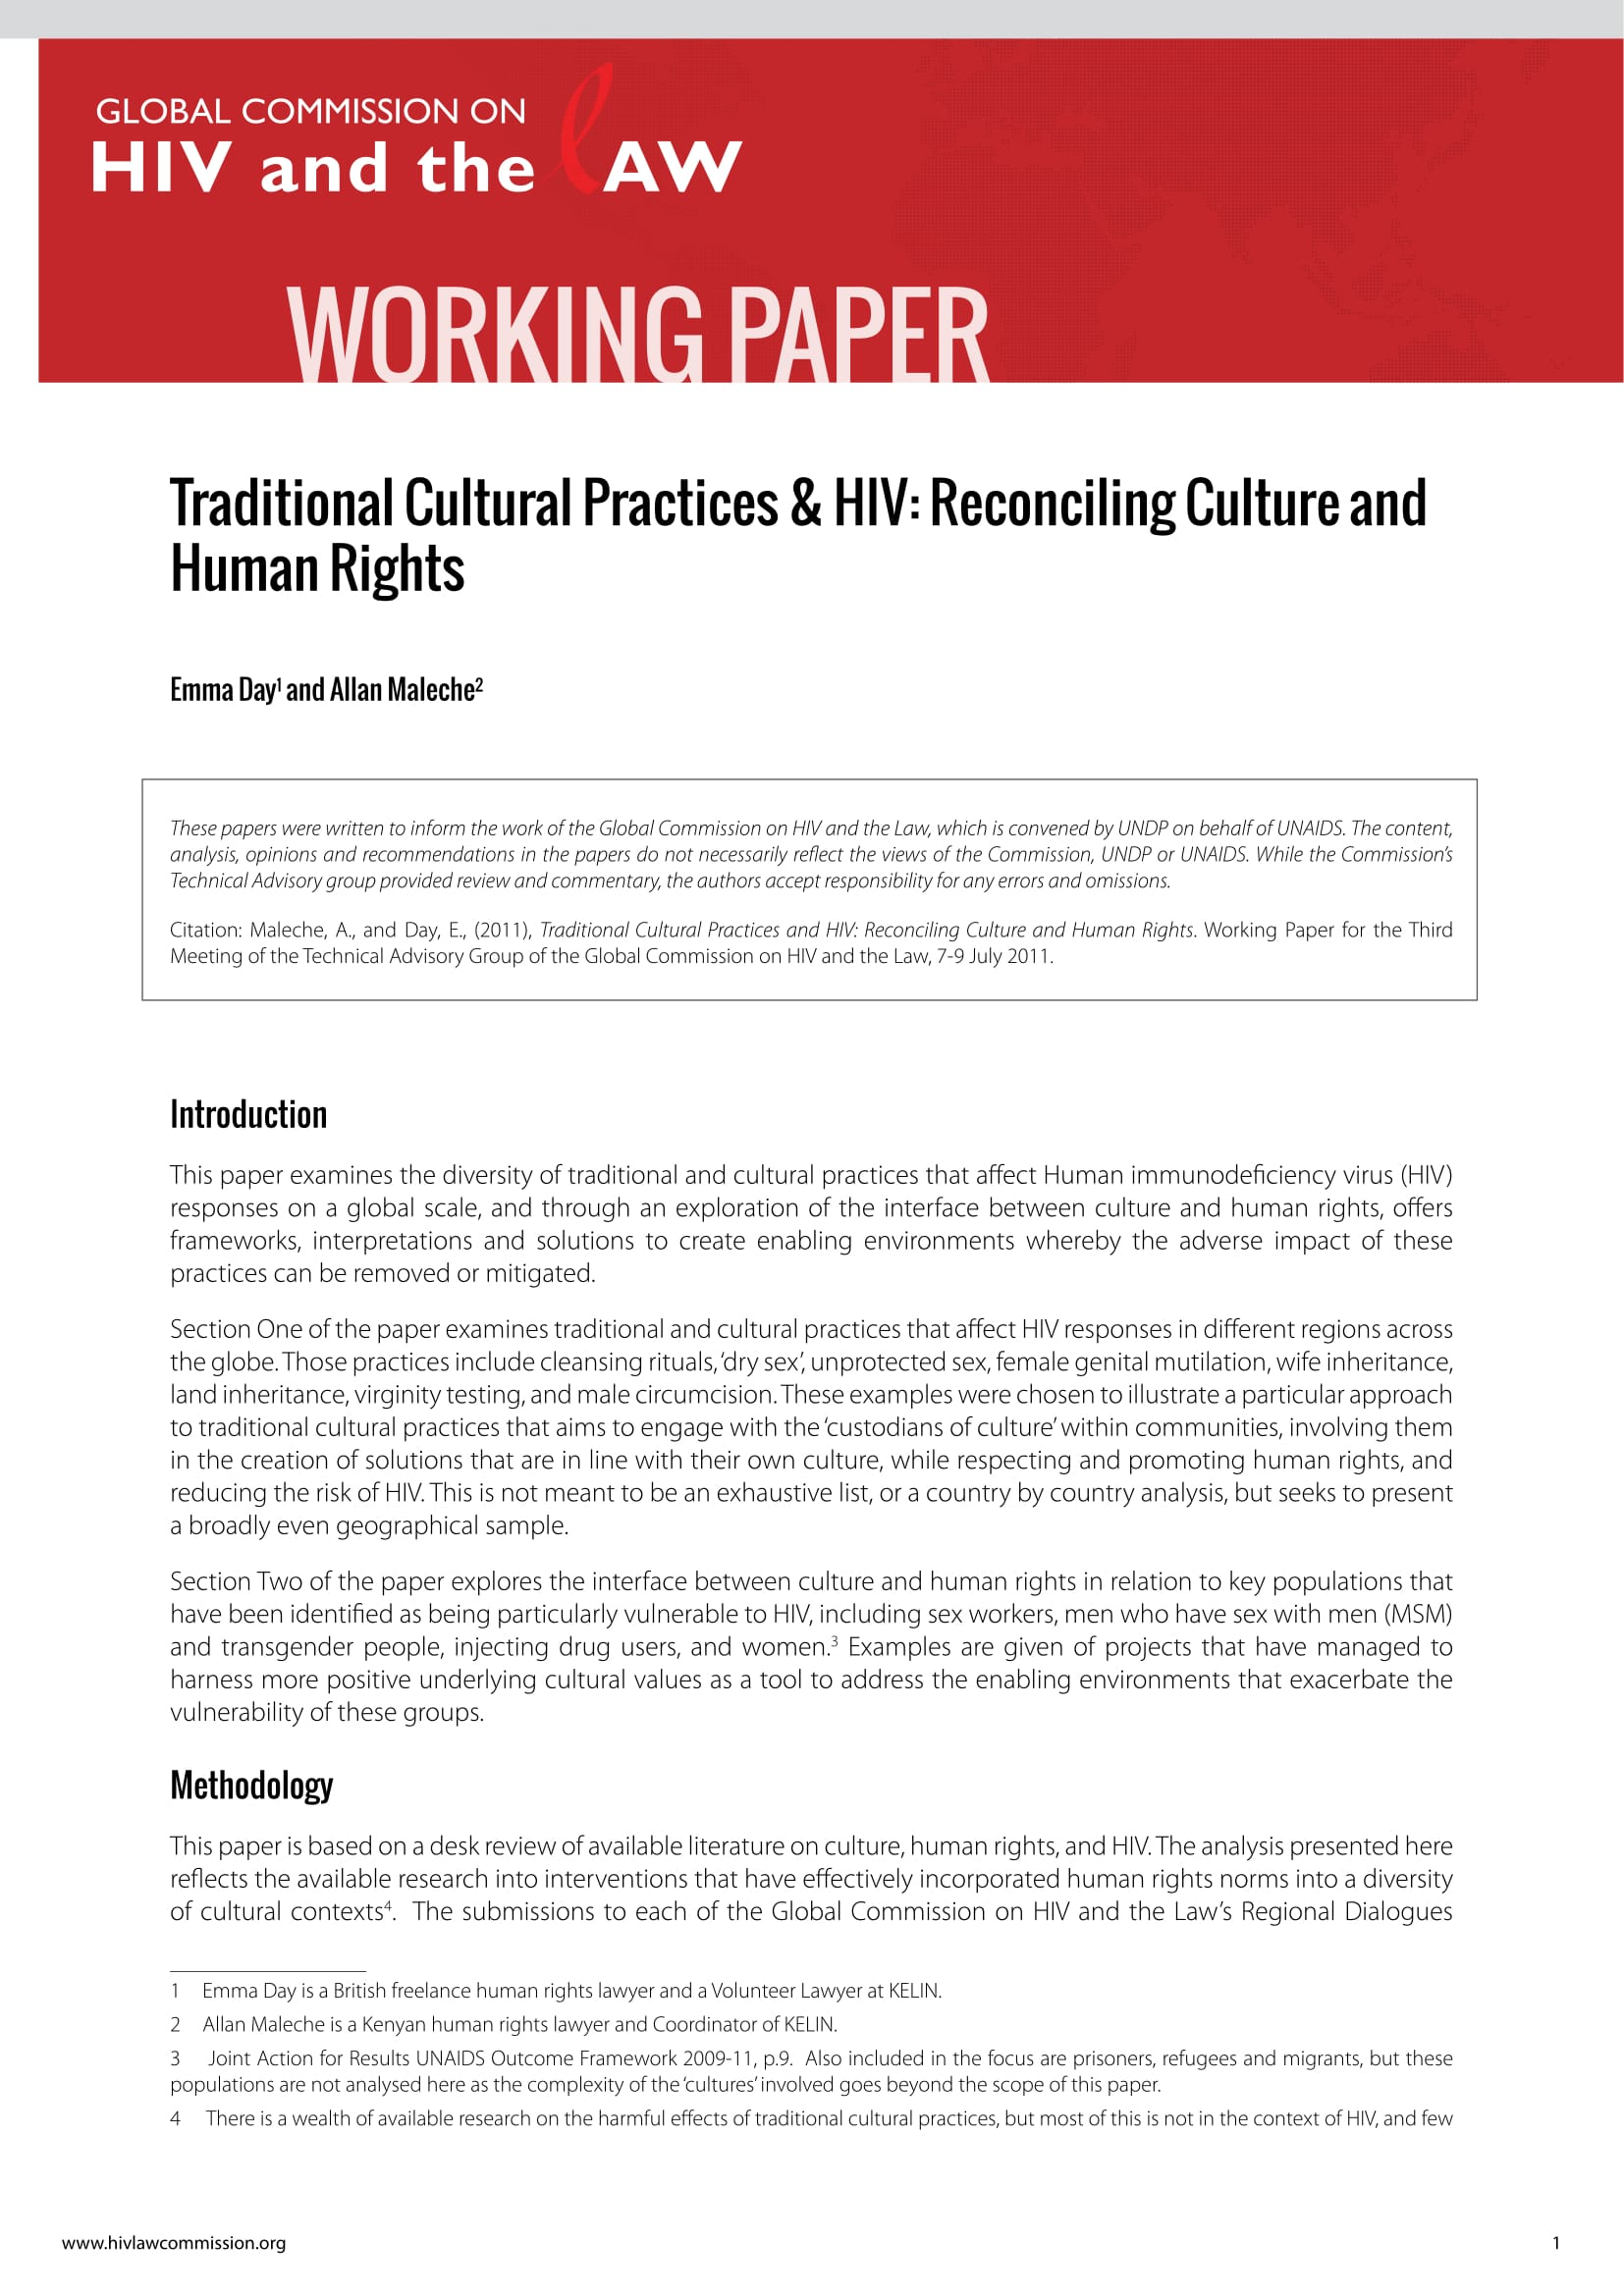 Traditional Cultural Practices and HIV: Reconciling Culture and Human Rights